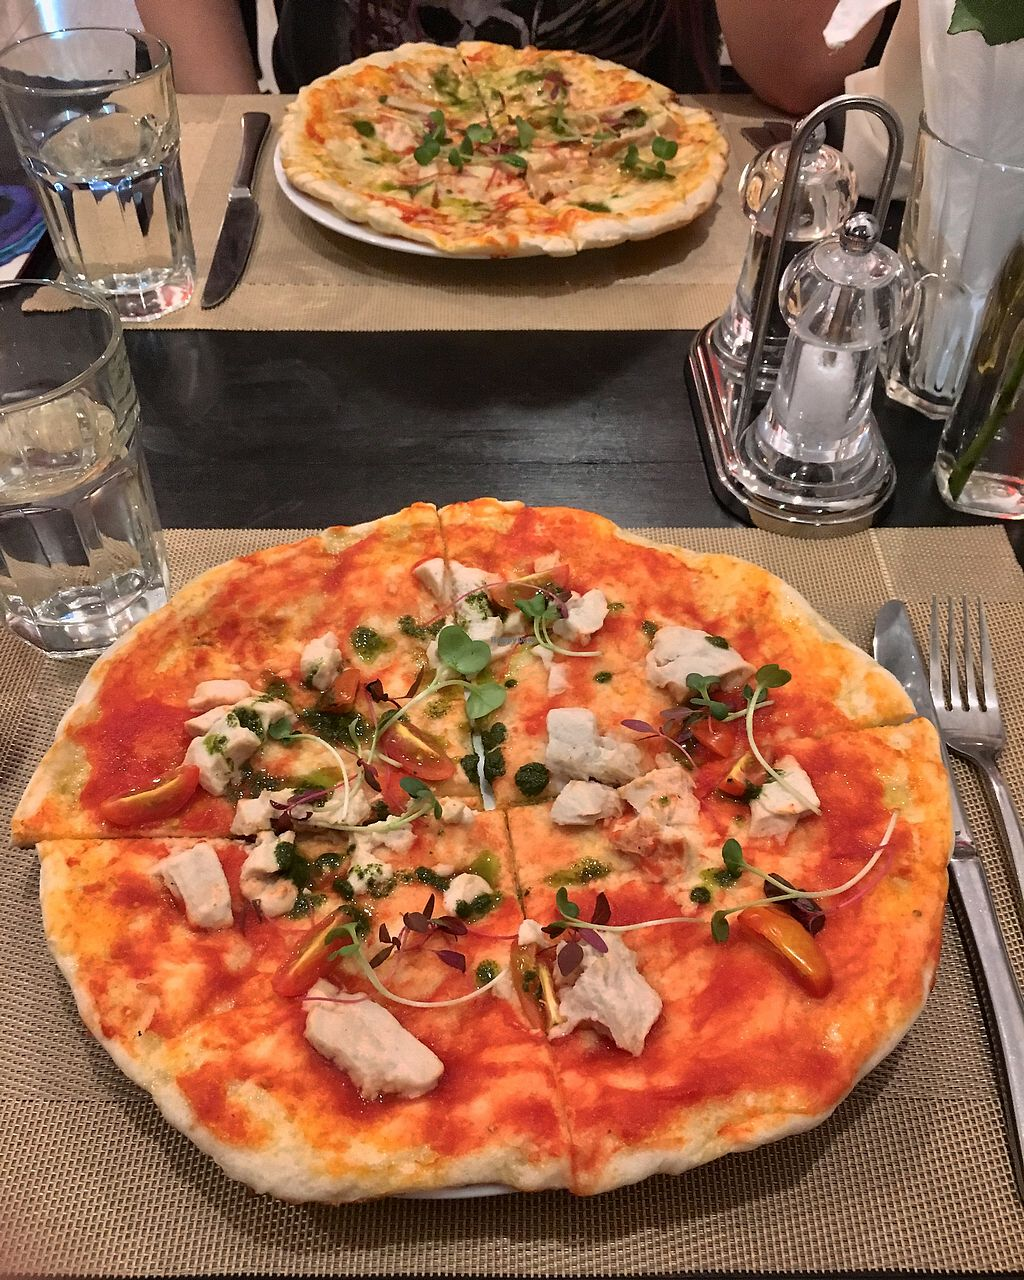 """Photo of La Pasta  by <a href=""""/members/profile/CamilaSilvaL"""">CamilaSilvaL</a> <br/>Pesto pizza  <br/> February 4, 2018  - <a href='/contact/abuse/image/83737/354850'>Report</a>"""